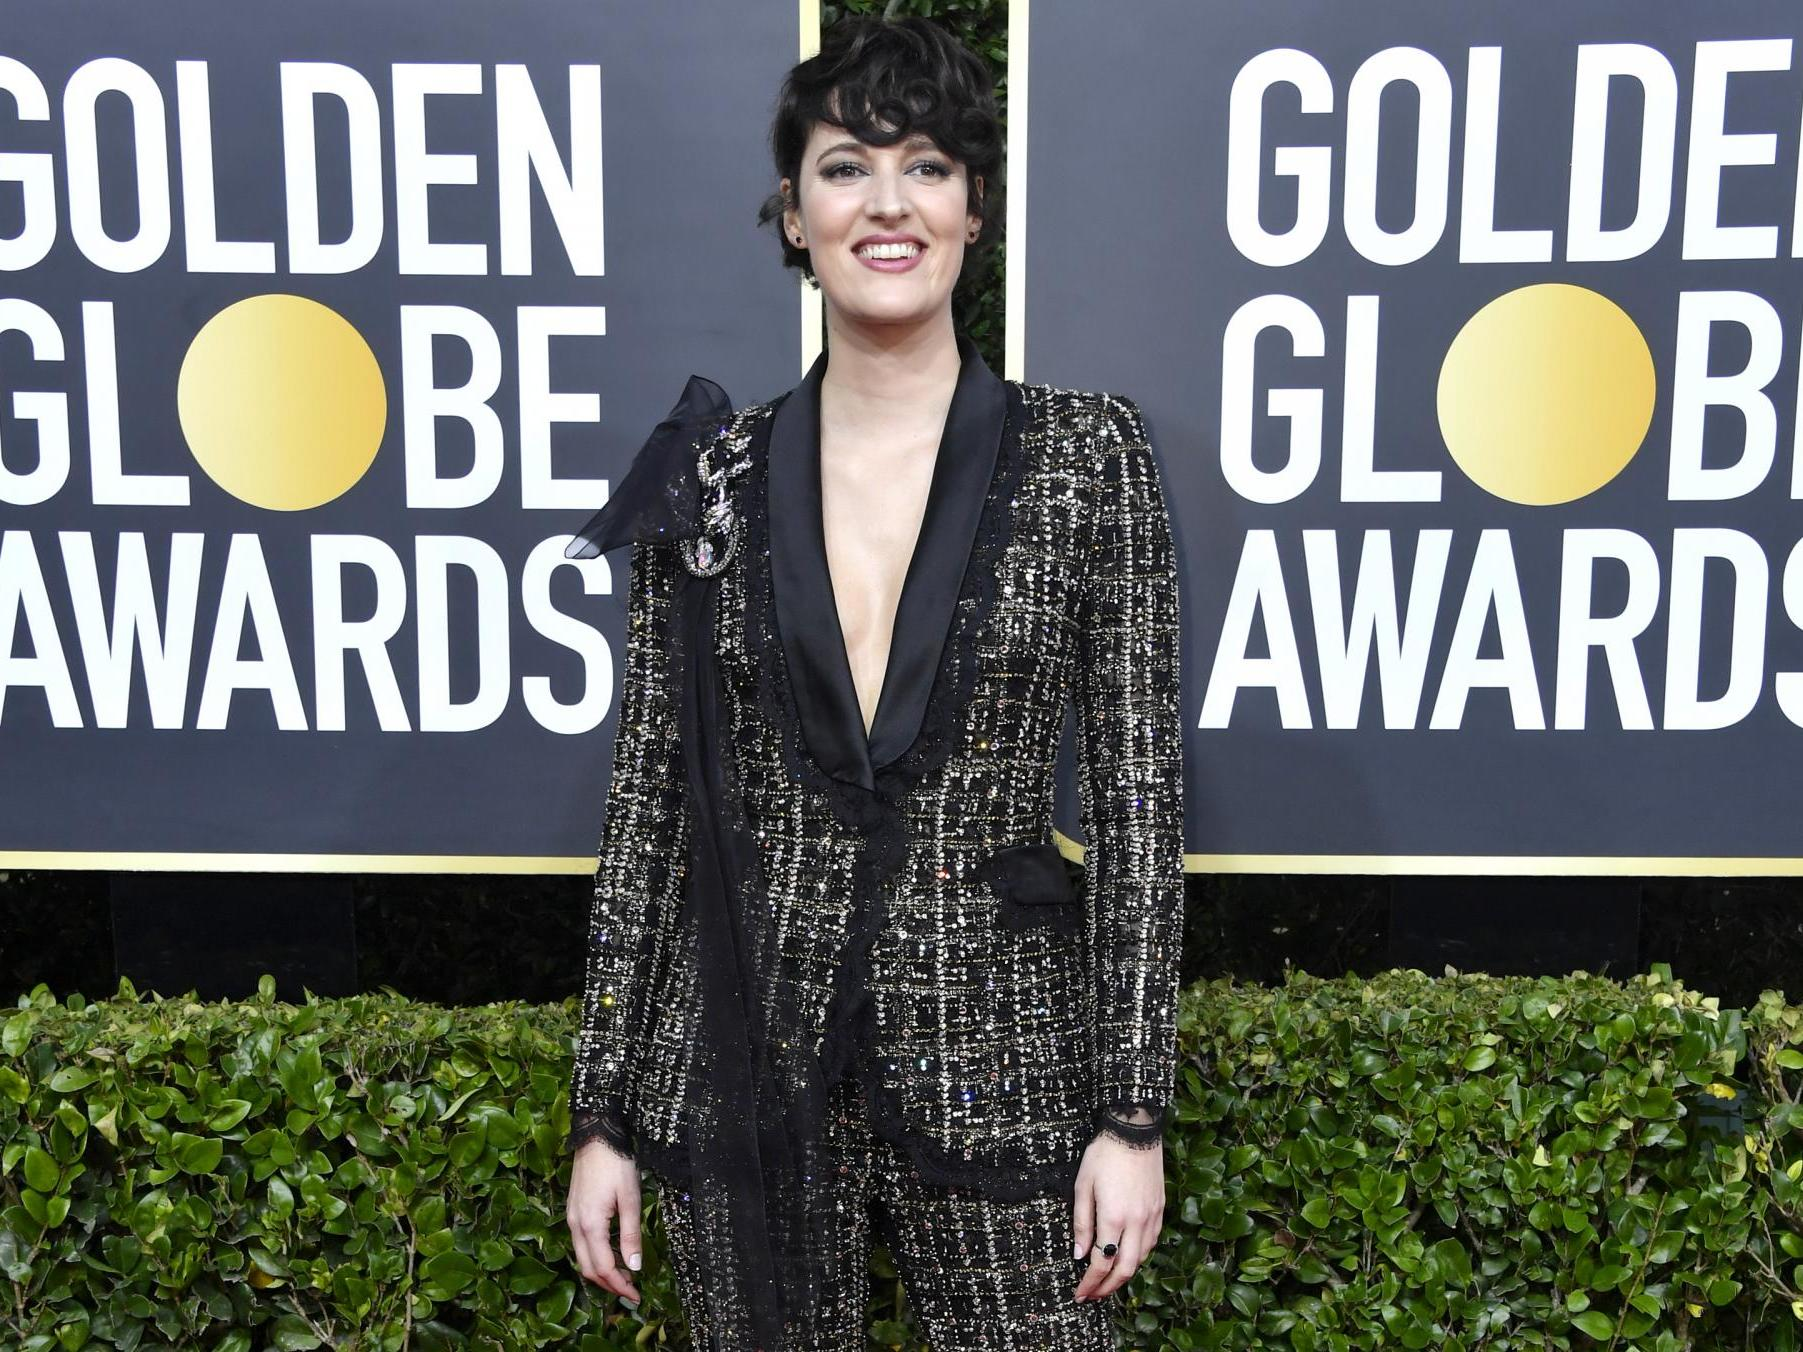 Australia wildfires: Phoebe Waller-Bridge raises $40,000 for relief efforts by selling Golden Globes suit